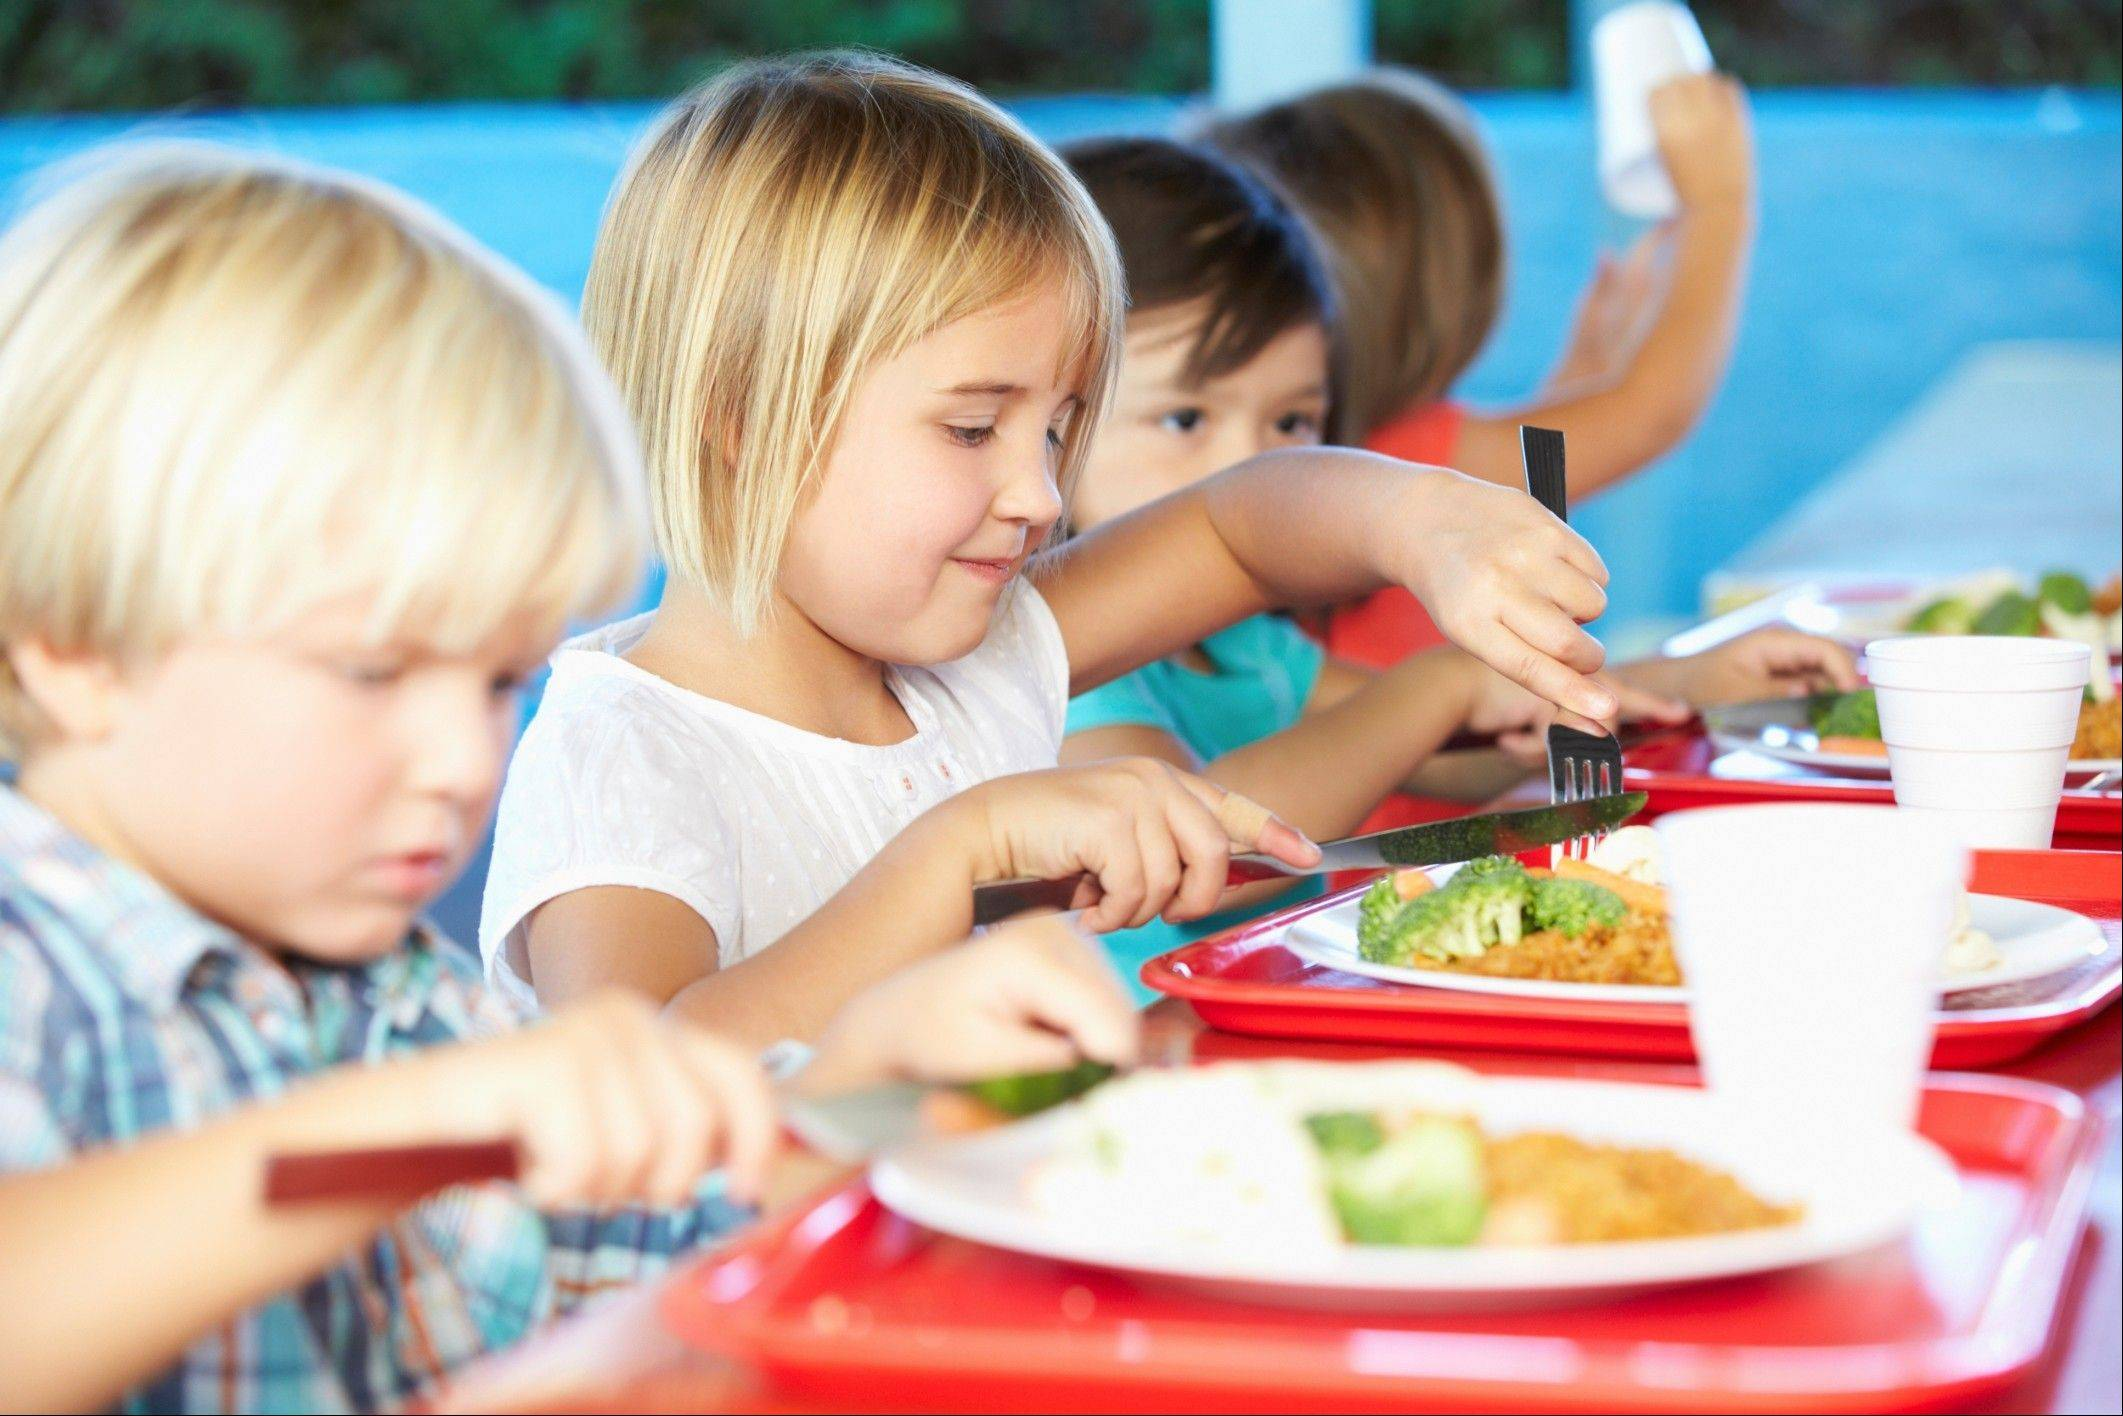 Kids who choose school lunches will eat more whole grains and healthier snacks next fall. Under the new standards, released in June to take effect in September 2014, items must have fewer than 200 calories, less than 230 milligrams of sodium, less than 35 percent of their calories from fat and less than 35 percent of their weight from sugar.